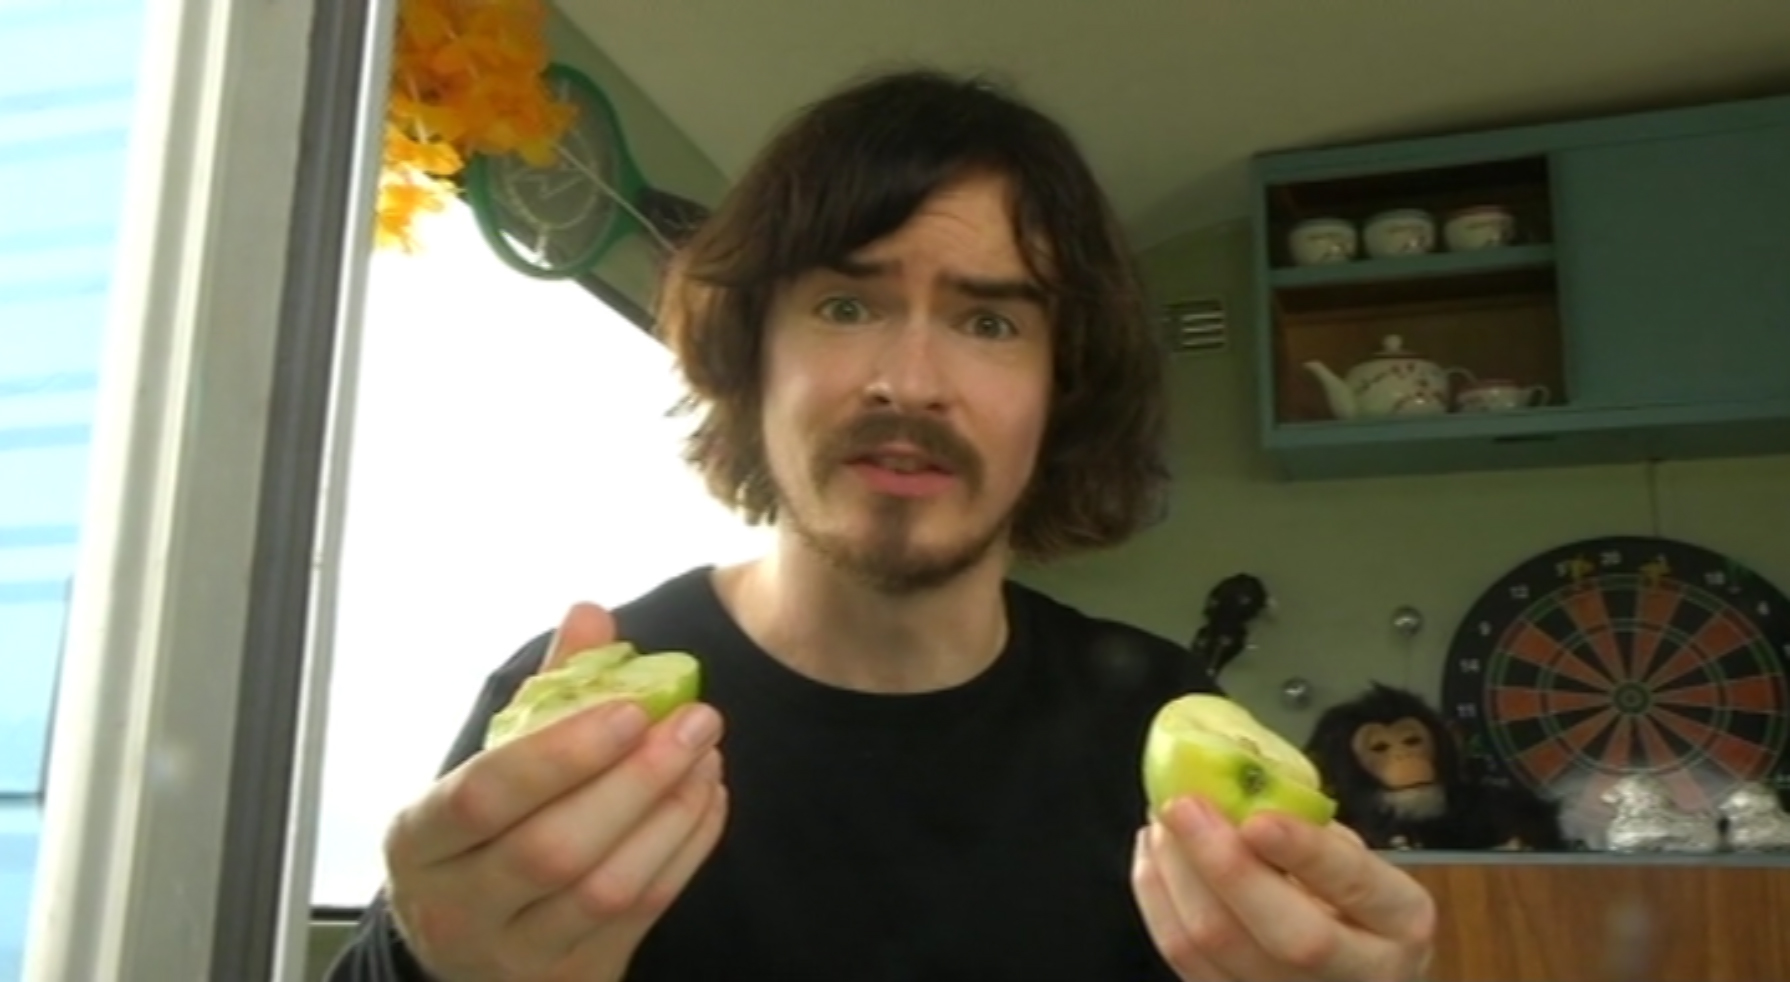 Max Burn holding an apple.